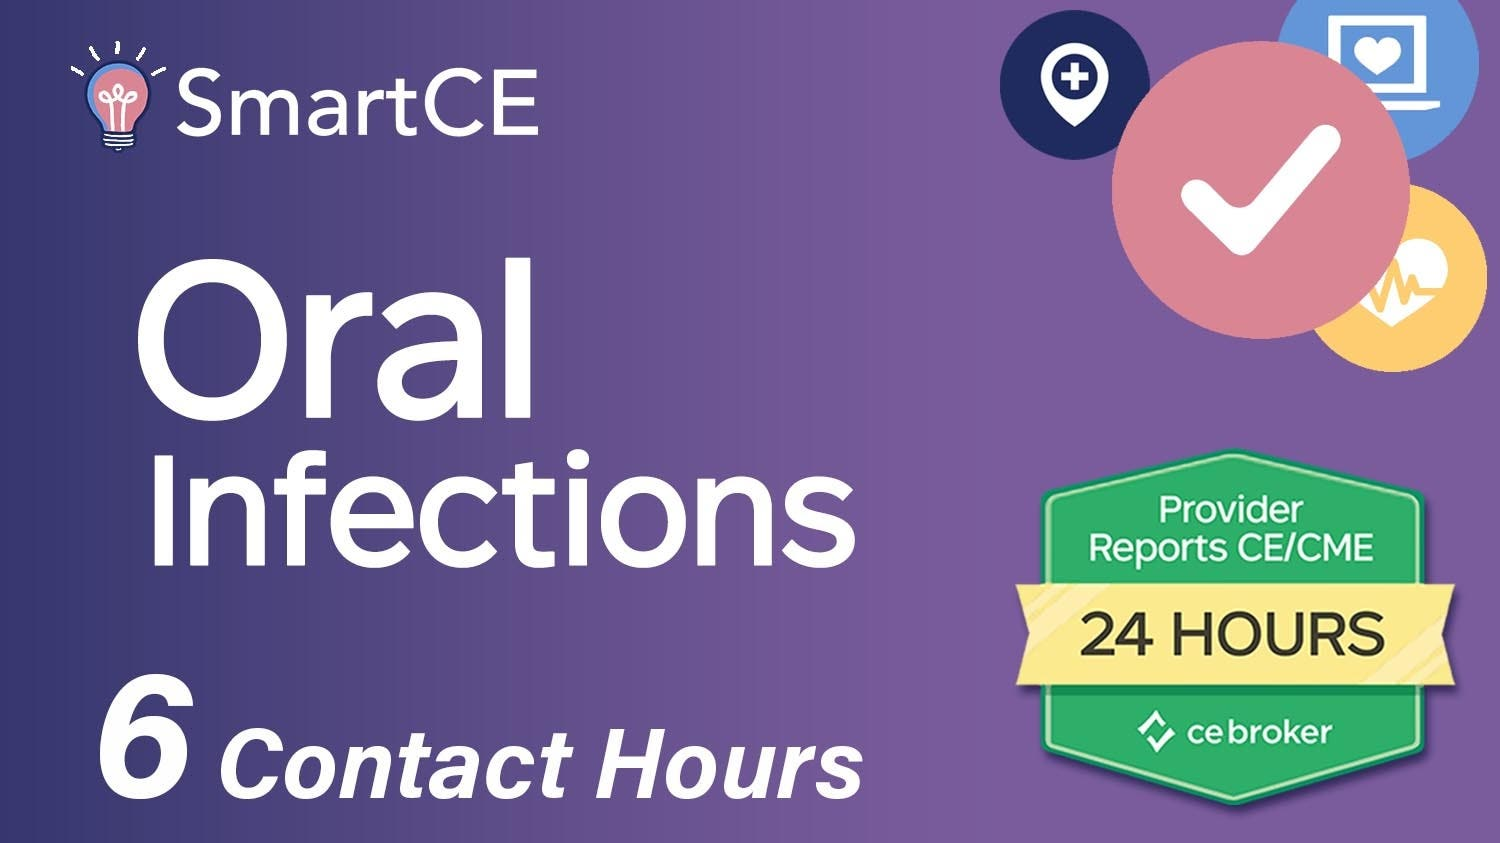 Oral Infections - 6 Contact Hours/20-757544